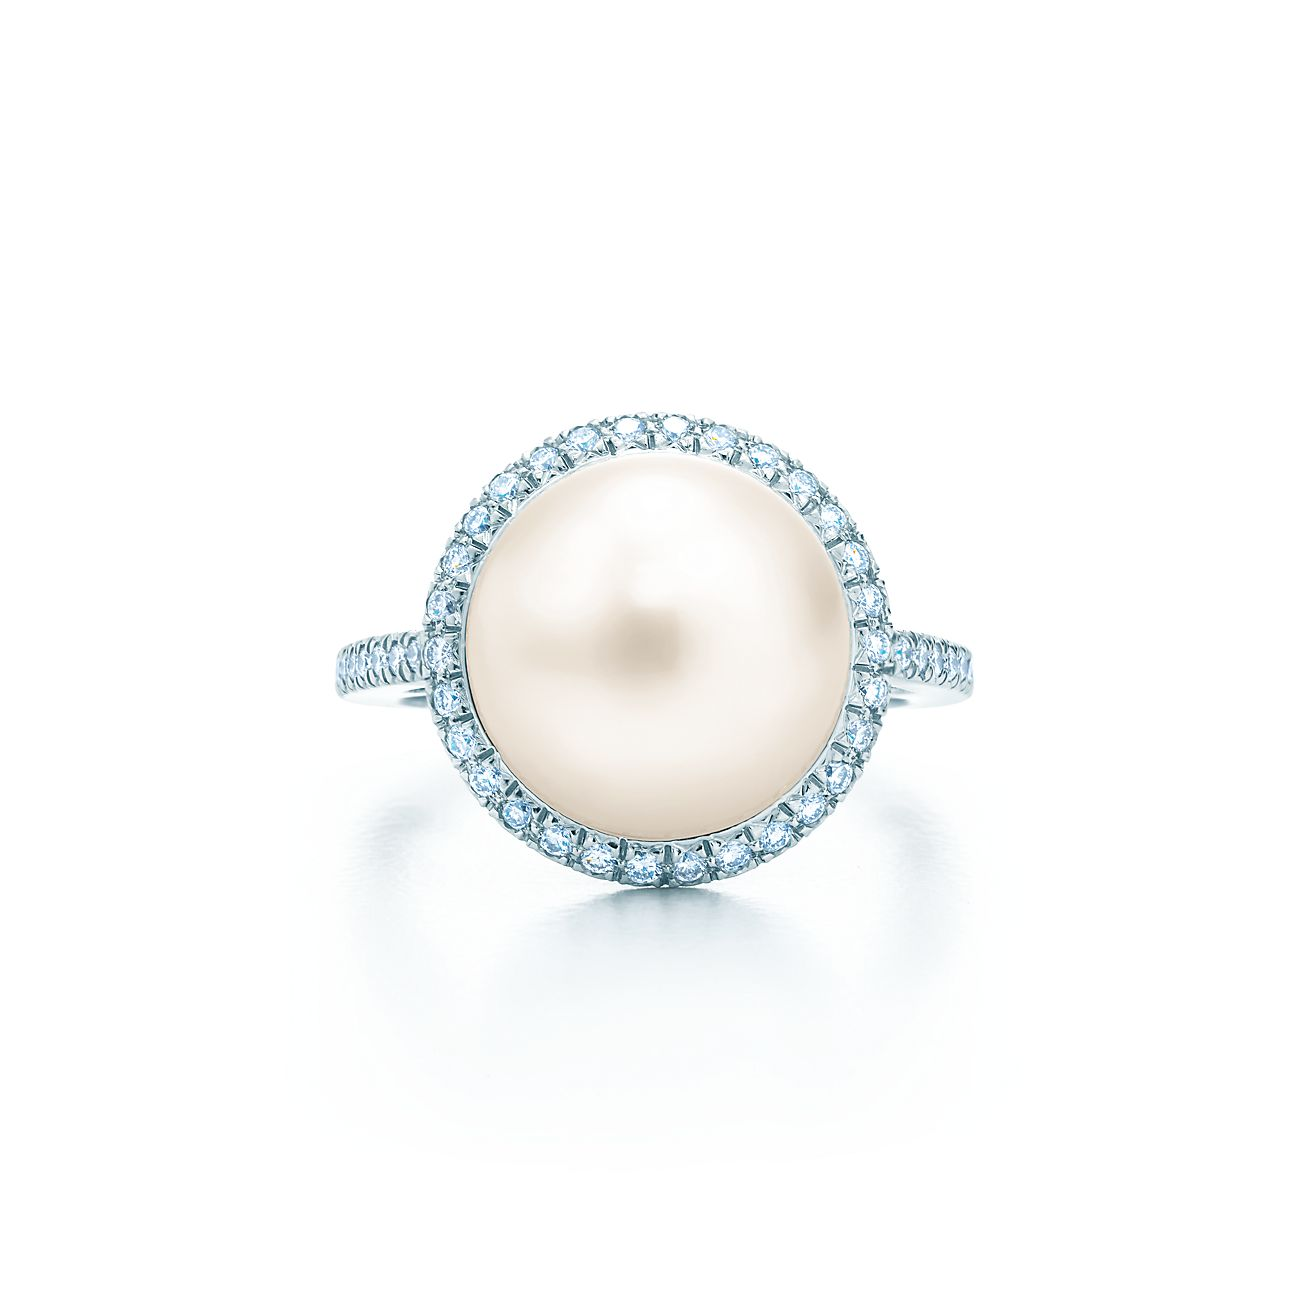 fashion superb pearl ring set wedding models trends engagement simple design designs pearls